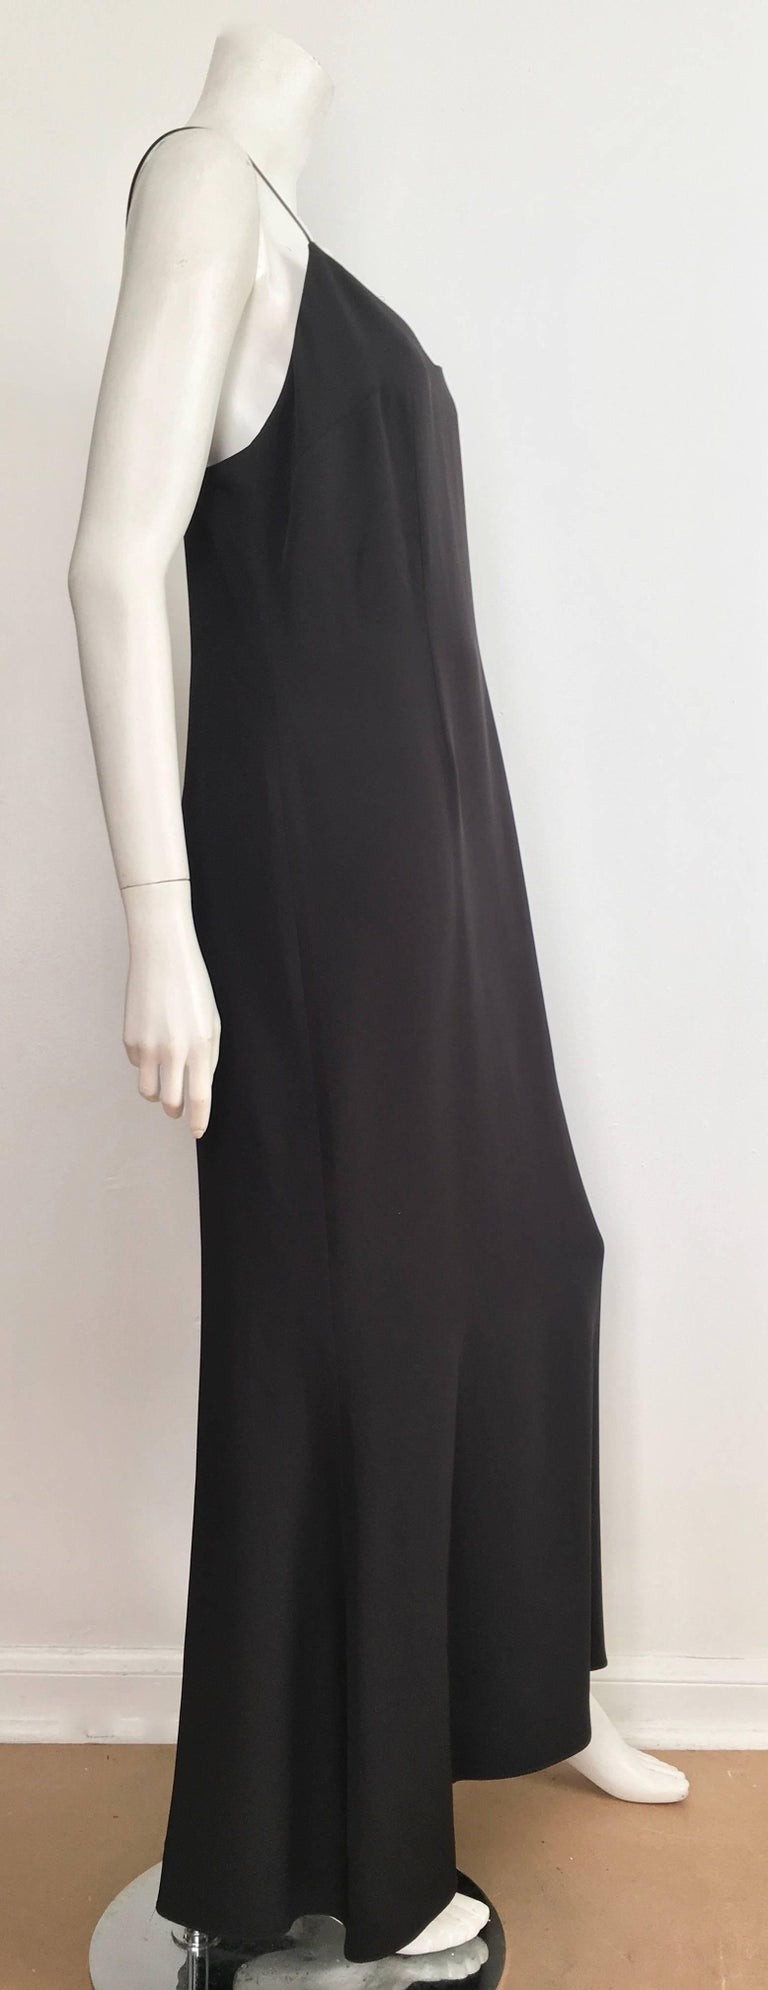 ea3128cfb2b Naeem Khan Black Silk Spaghetti Strap Evening Maxi Dress Size 12. For Sale 4